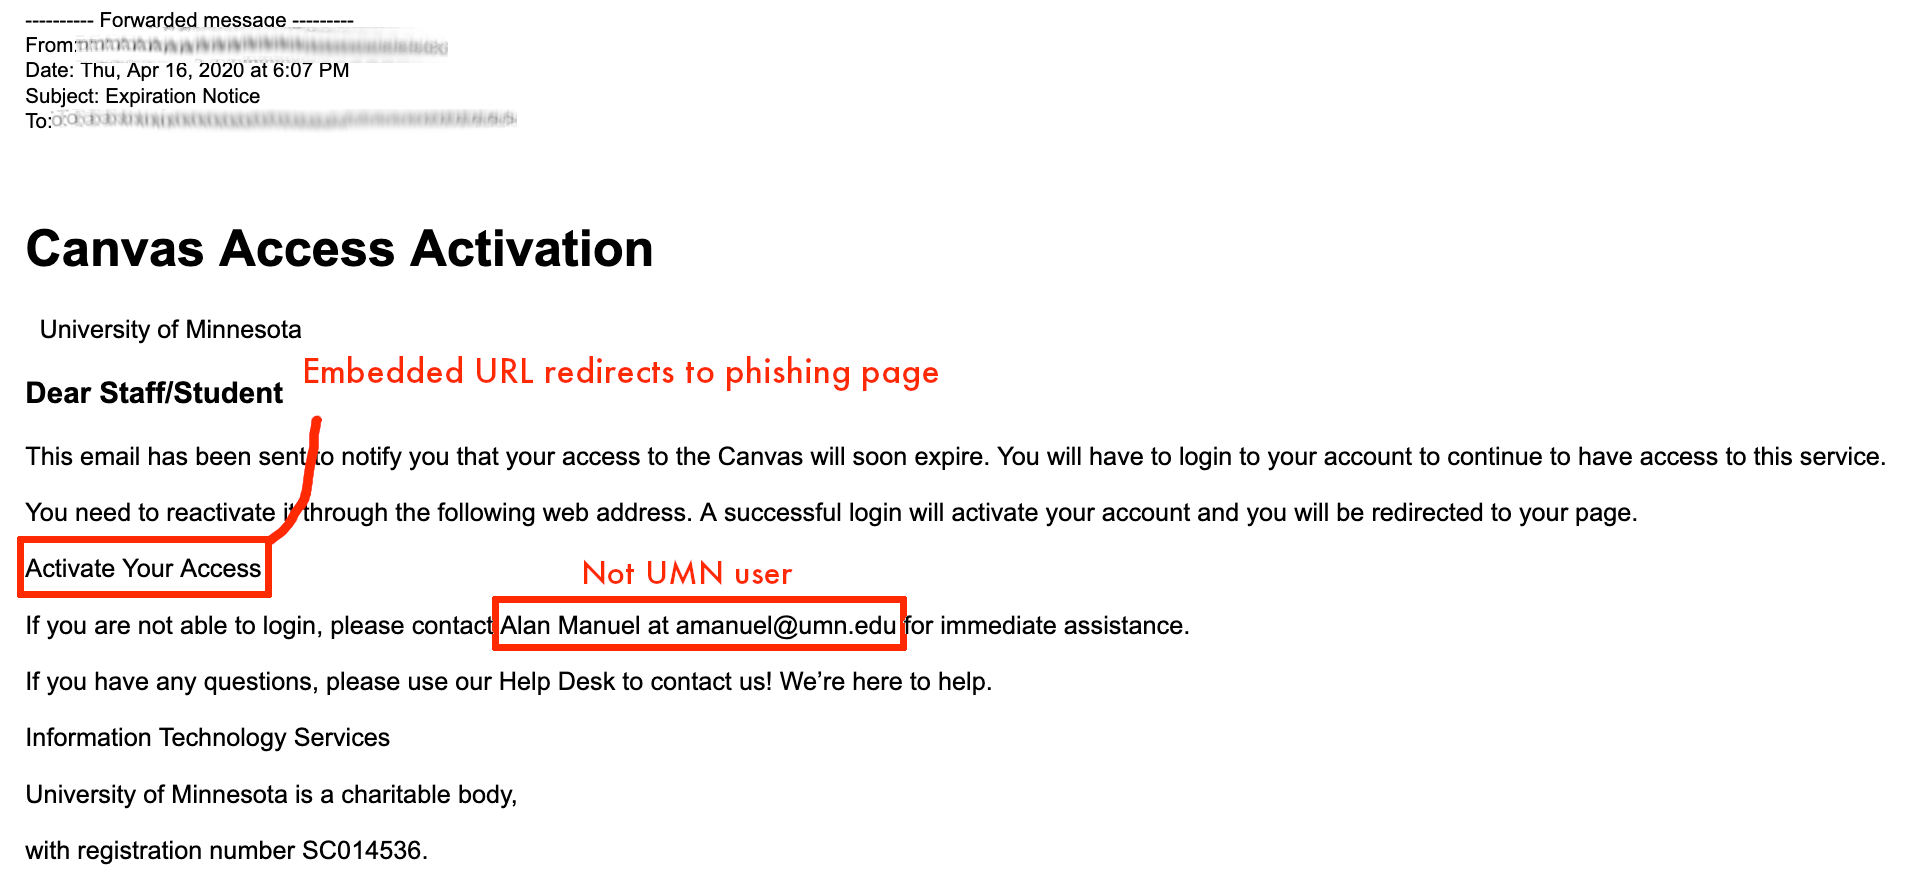 A screenshot of the phishing email message for Canvas